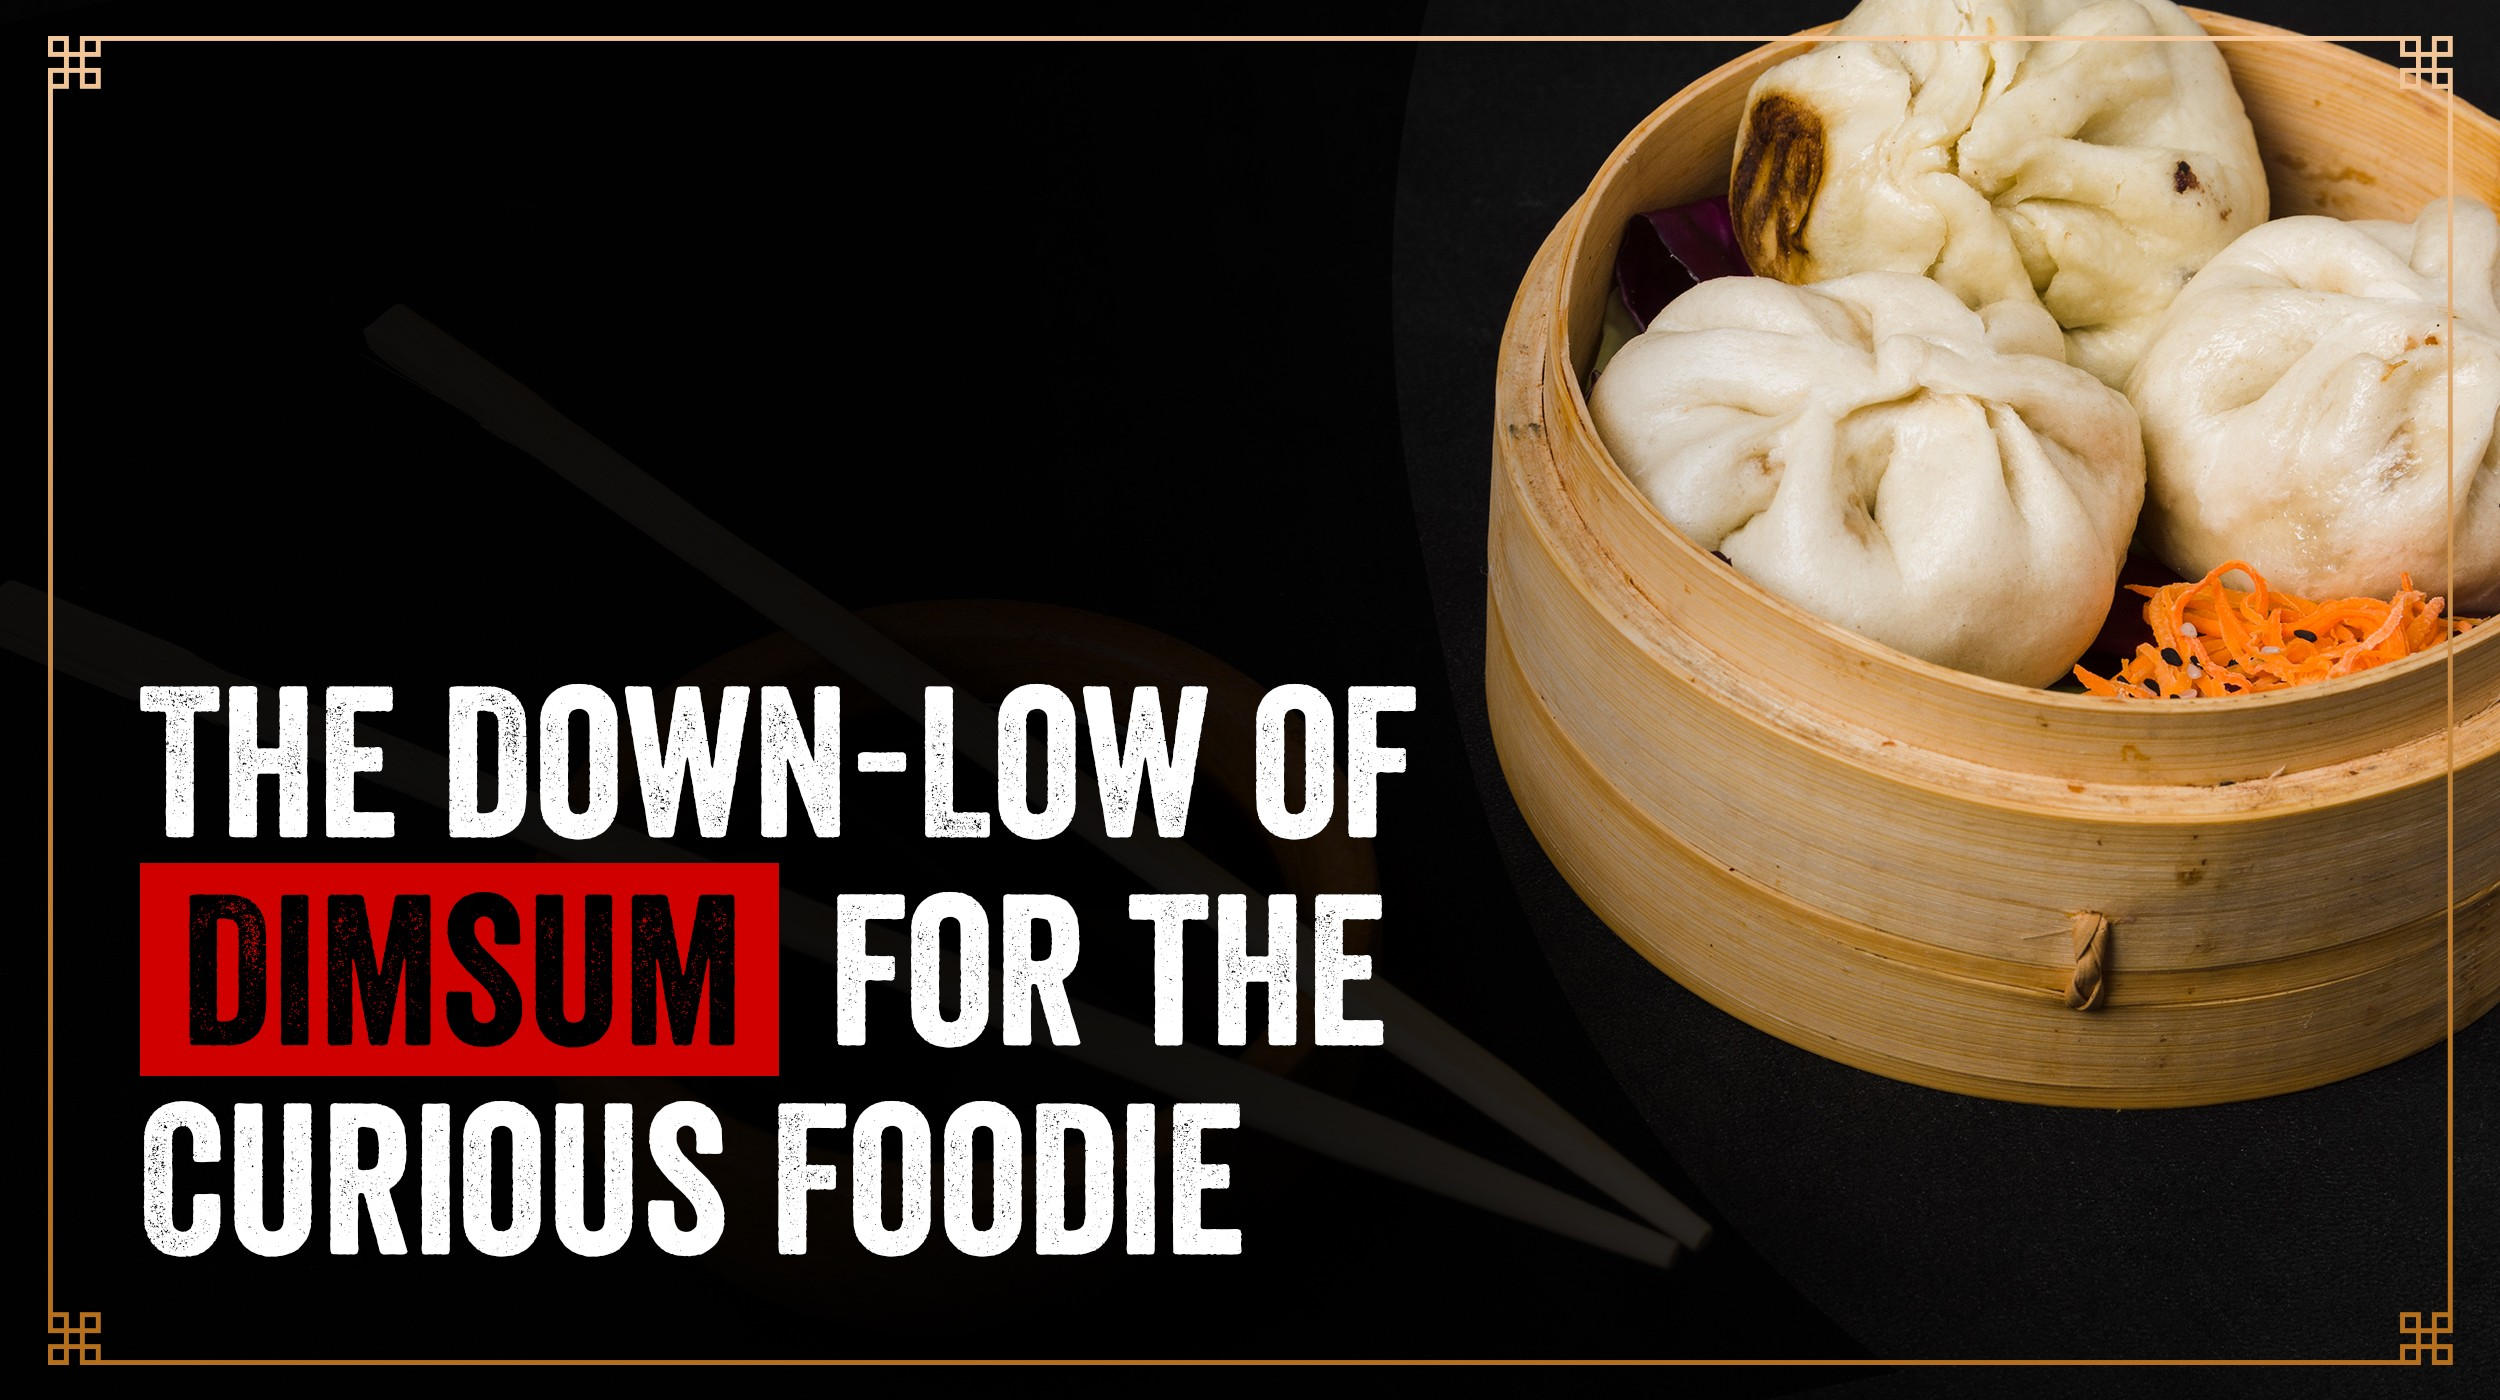 the down-low of dimsum for the foodie